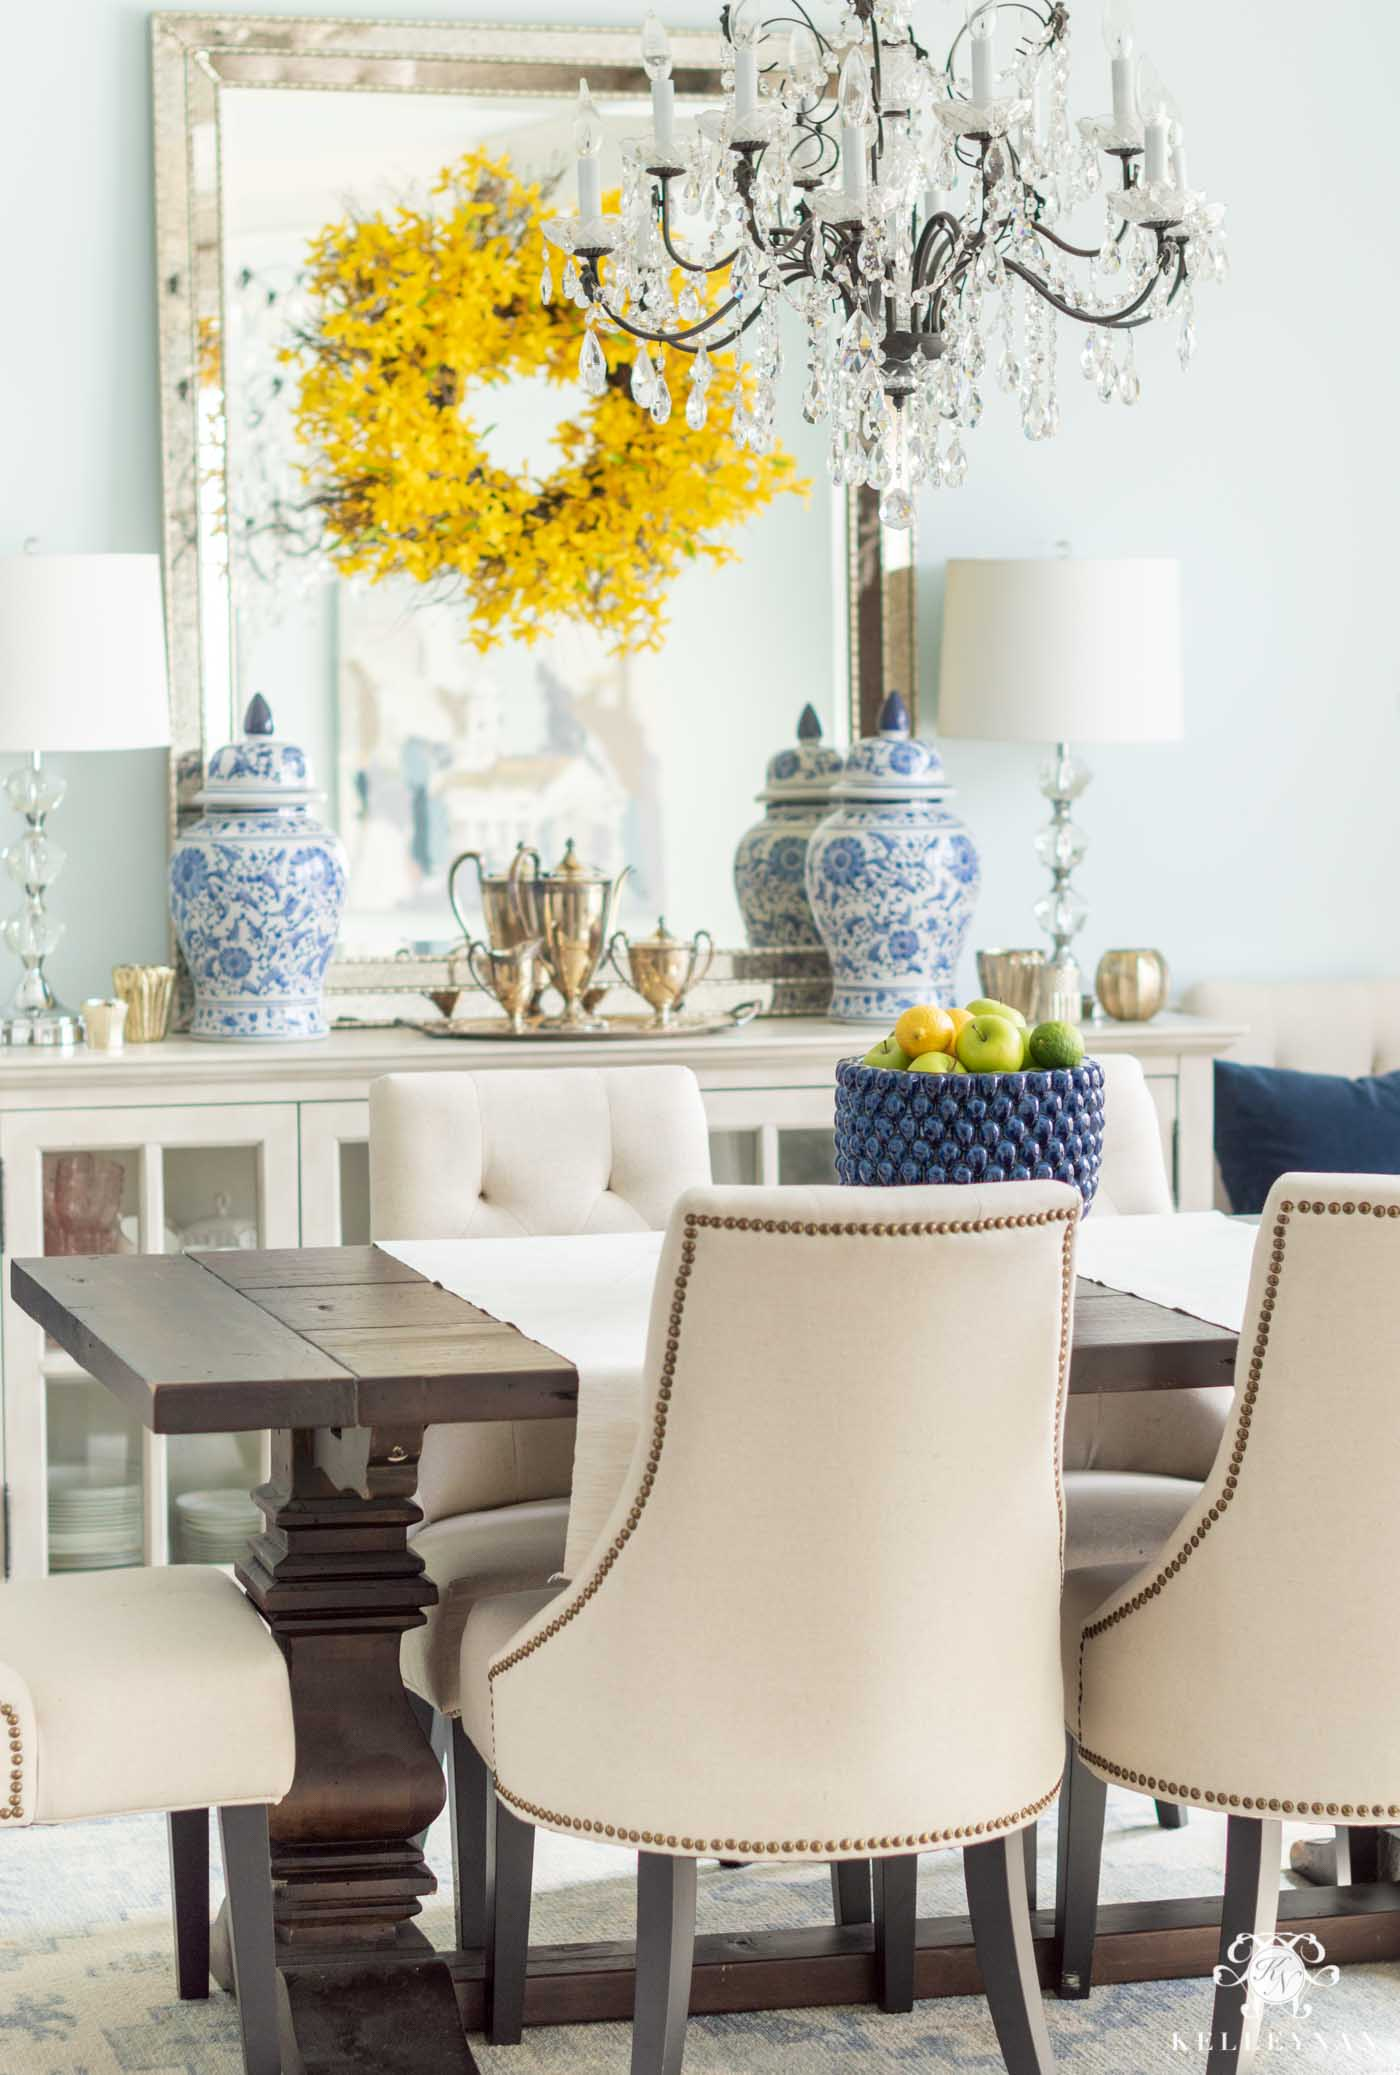 How to Decorate for Spring without Leaving Your Home